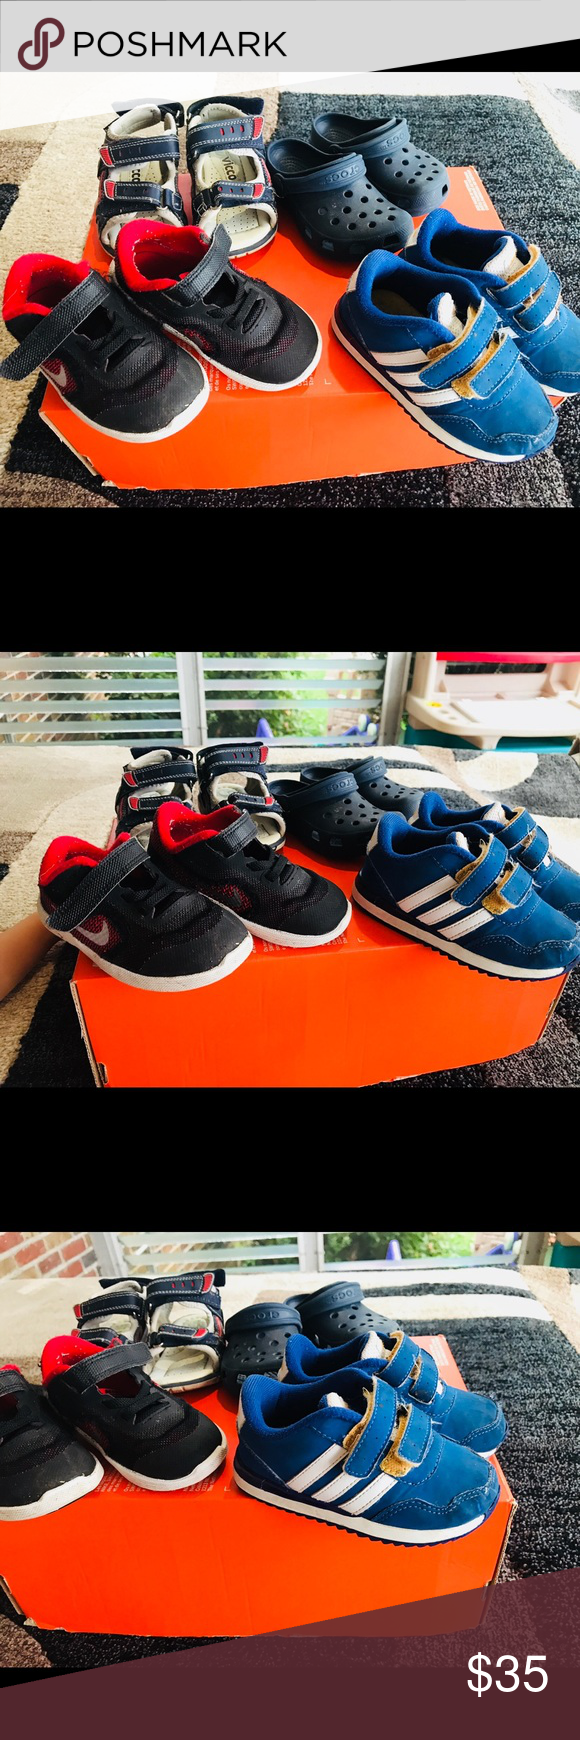 Clothing, Shoes & Accessories Kids' Clothing, Shoes & Accs Toddler Sandals Size 6 Adidas Croc Brand New